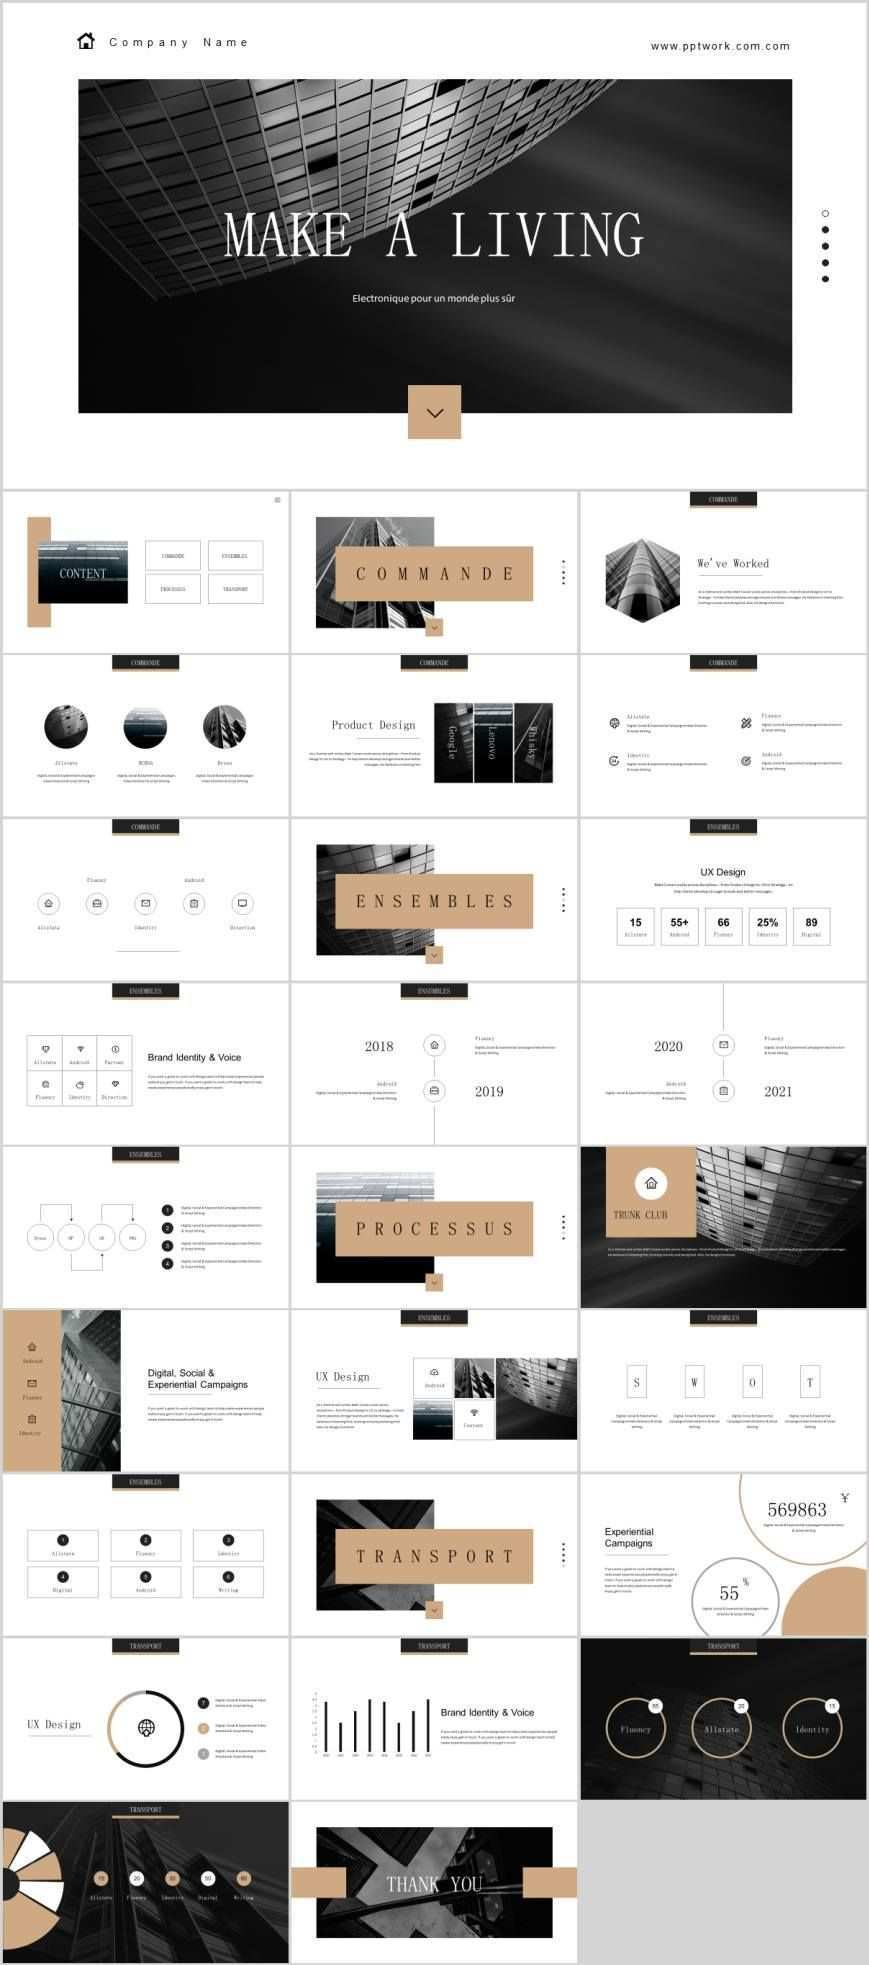 Gray Business Timeline Swot Powerpoint Template Powerpoint Gray Business Timeline Swot Powerpoint Template Powerpoint Vorlagen Vorlagen Ppt Design